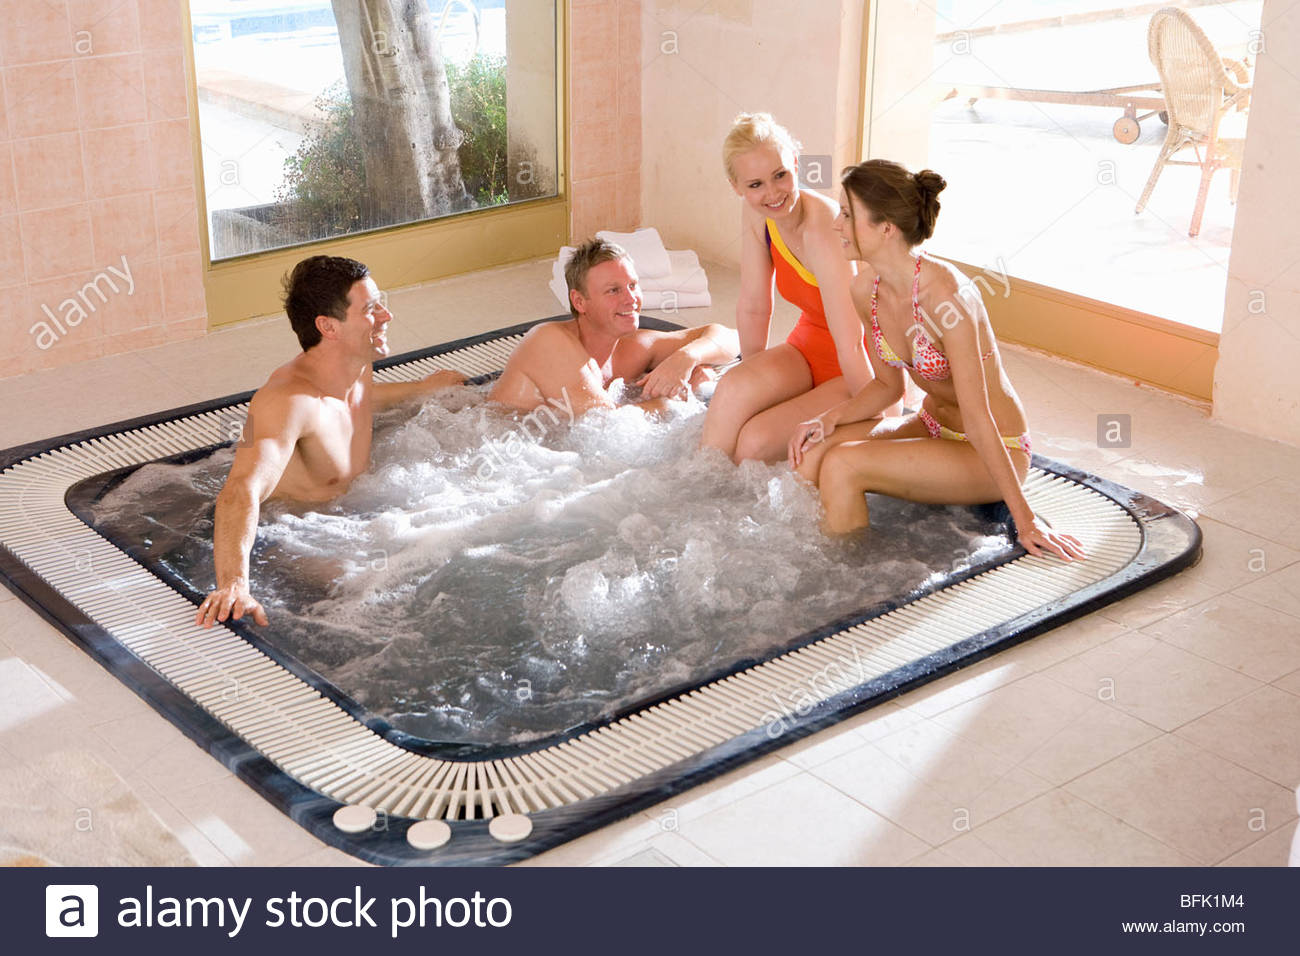 Couples in hot tub Stock Photo: 26848644 - Alamy